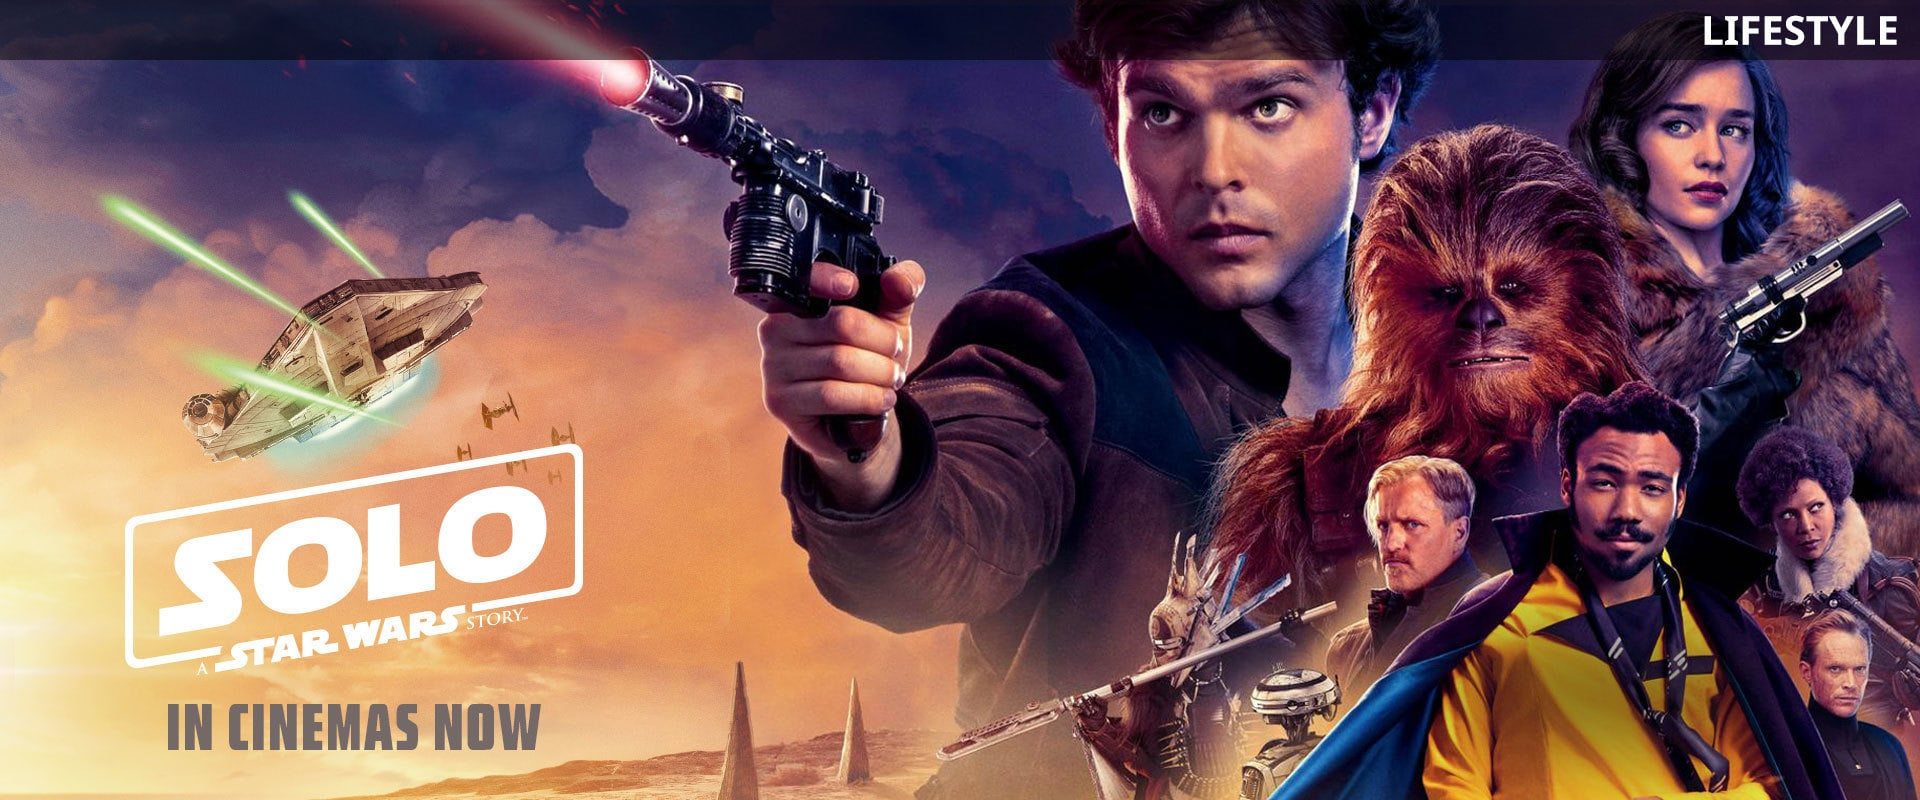 Solo: A Star Wars Story | Star Wars | Lifestyle | Homepage | Movies